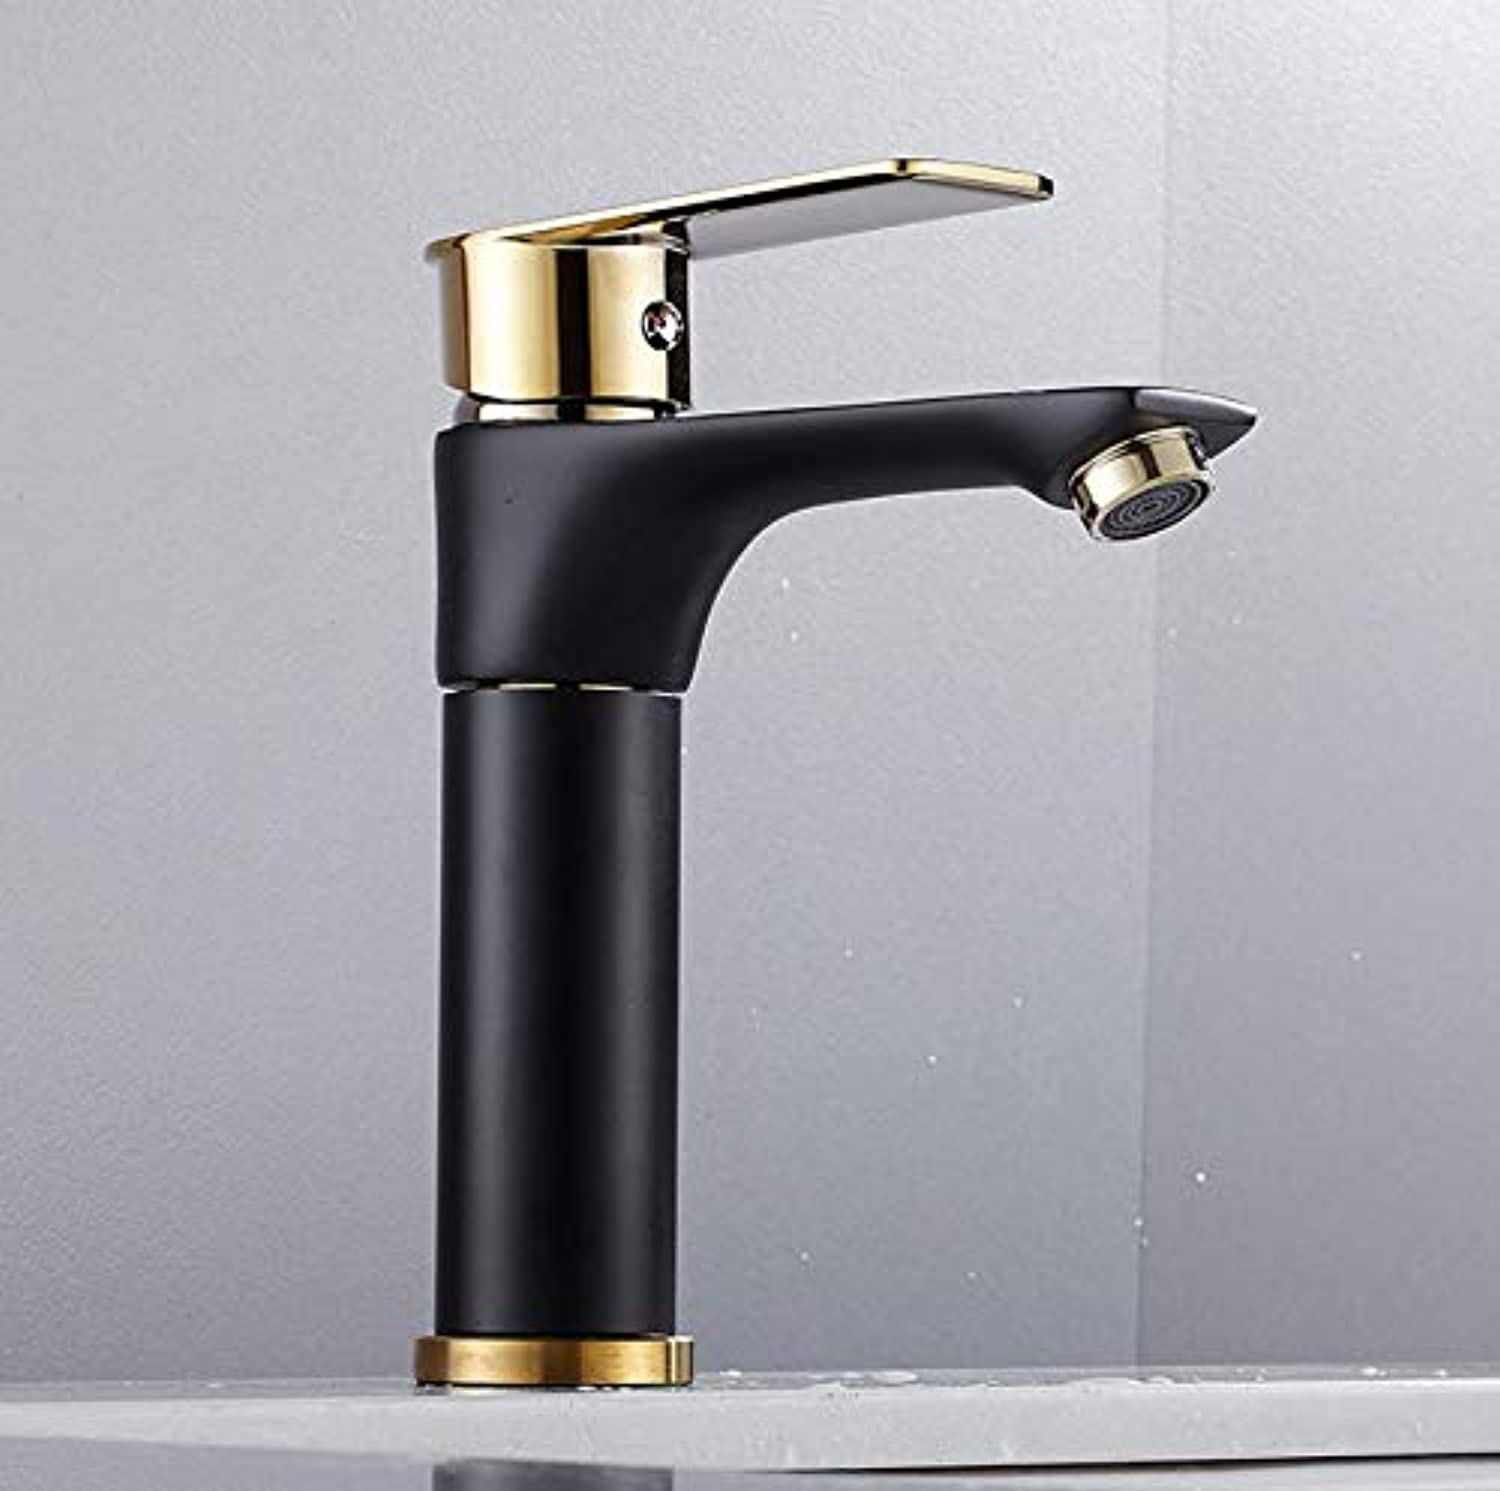 Sink Faucet Basin Faucet, Export Brass Chrome Basin Hot and Cold Water Faucet redating Basin Faucet